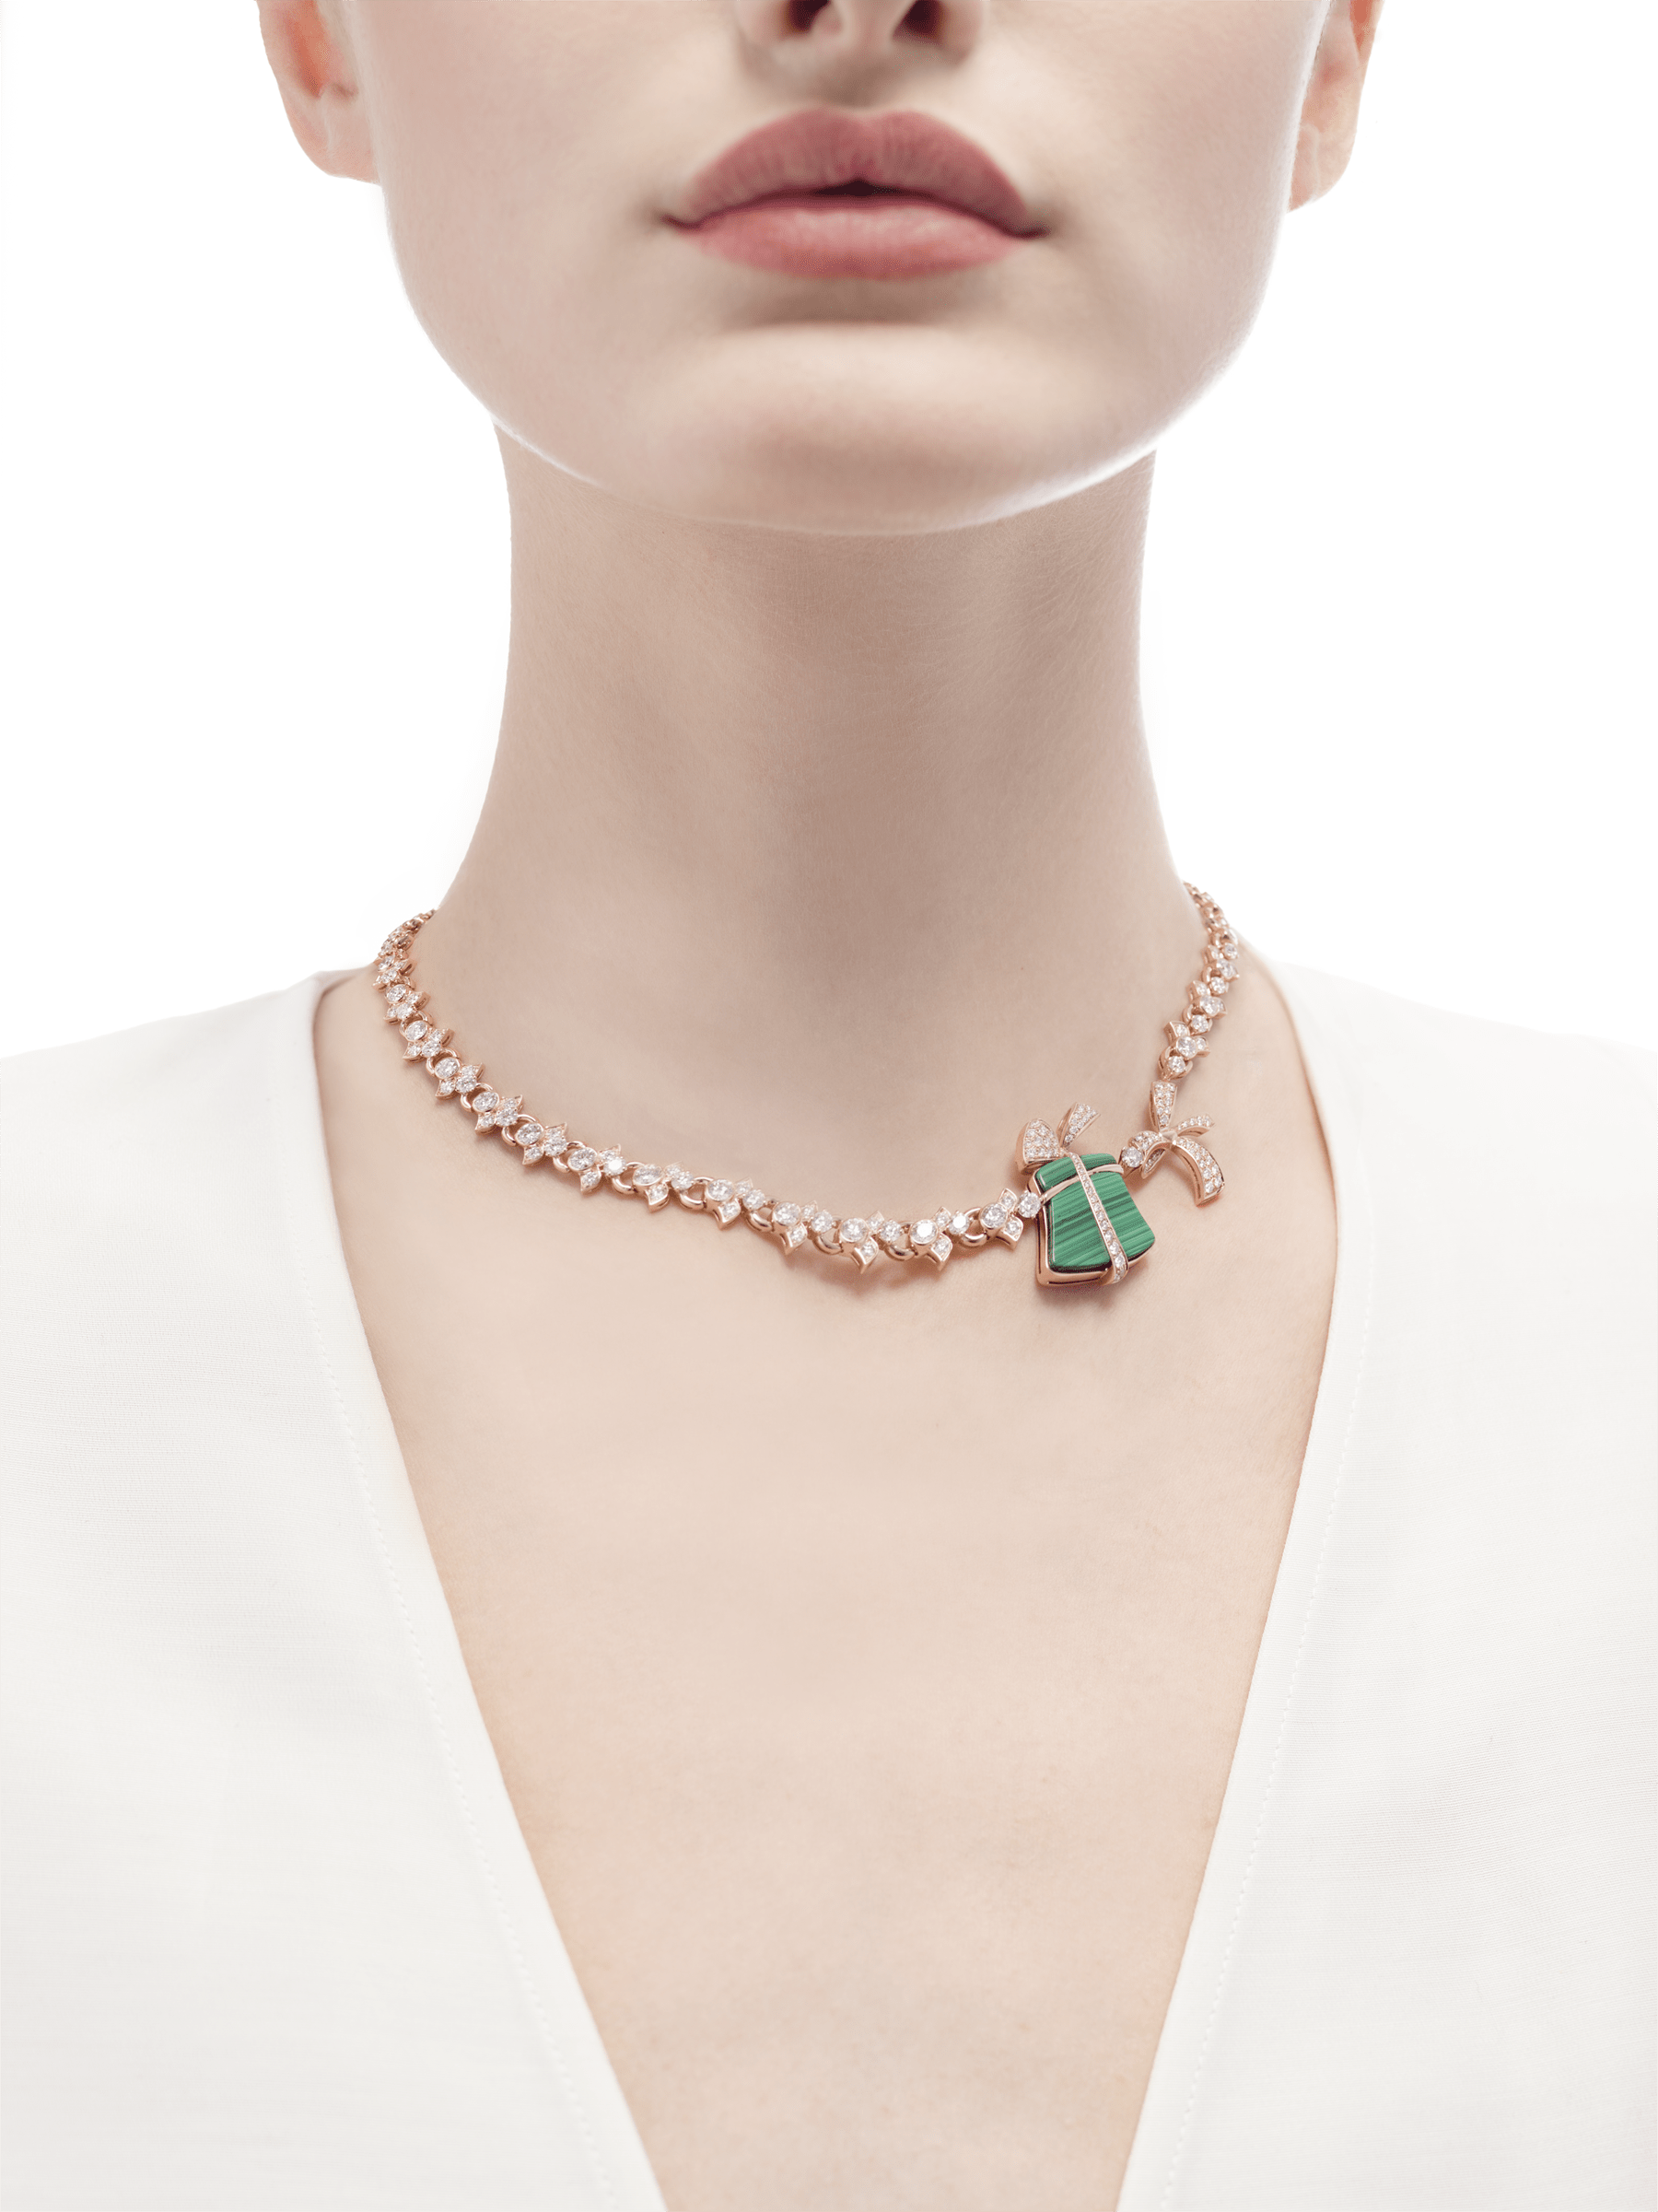 Festa 18 kt rose gold necklace set with malachite elements and pavé diamonds 355917 image 2